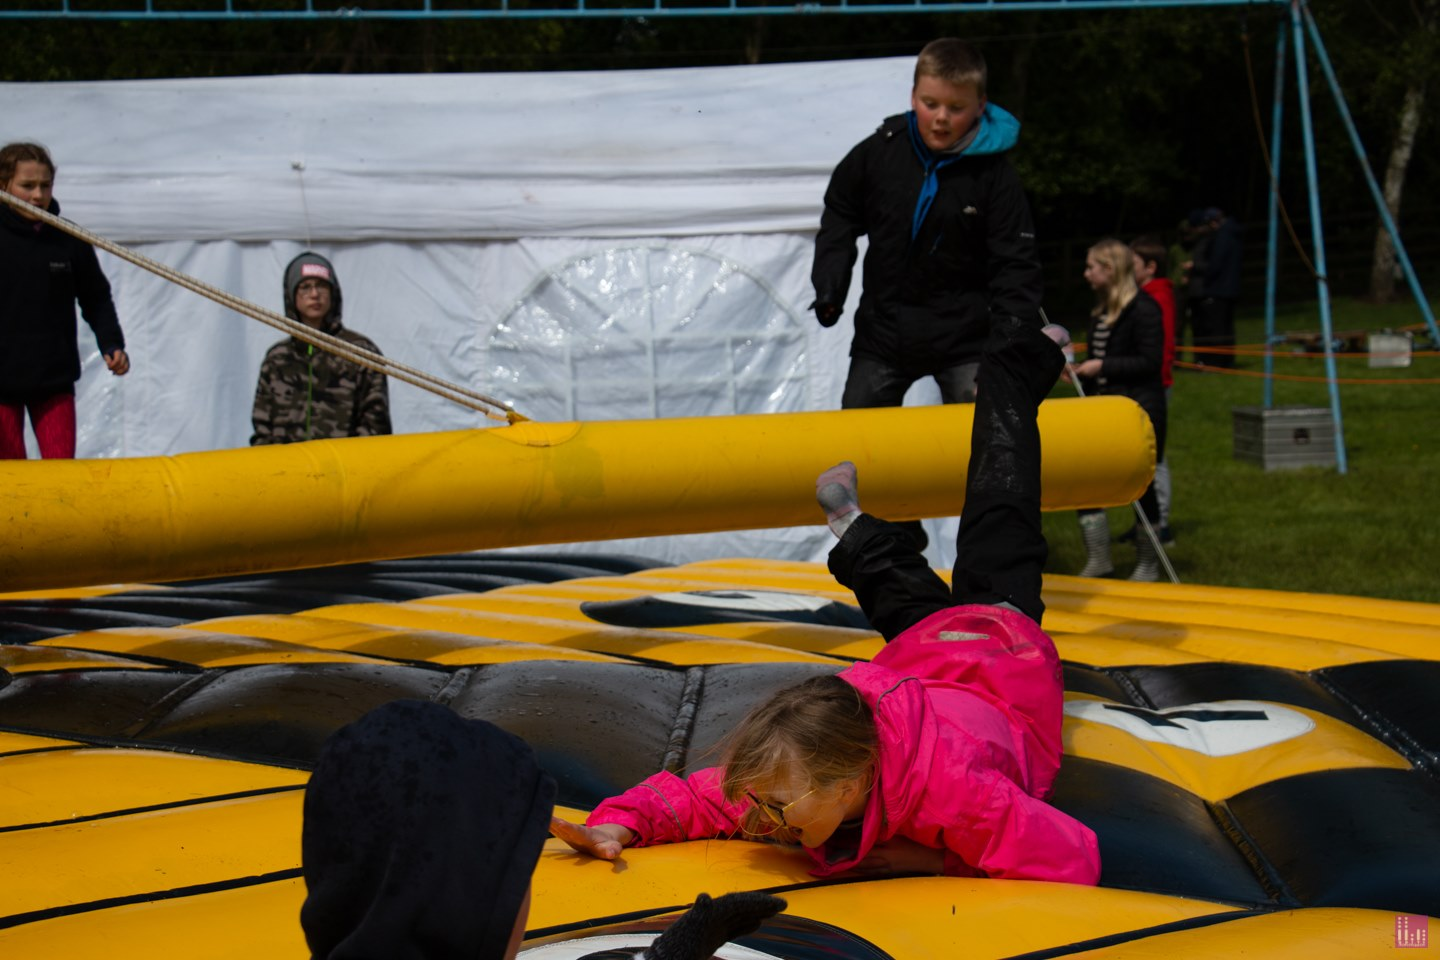 Having a bounce around Raywell Park Activity Centre for #Humberside Scout Camp